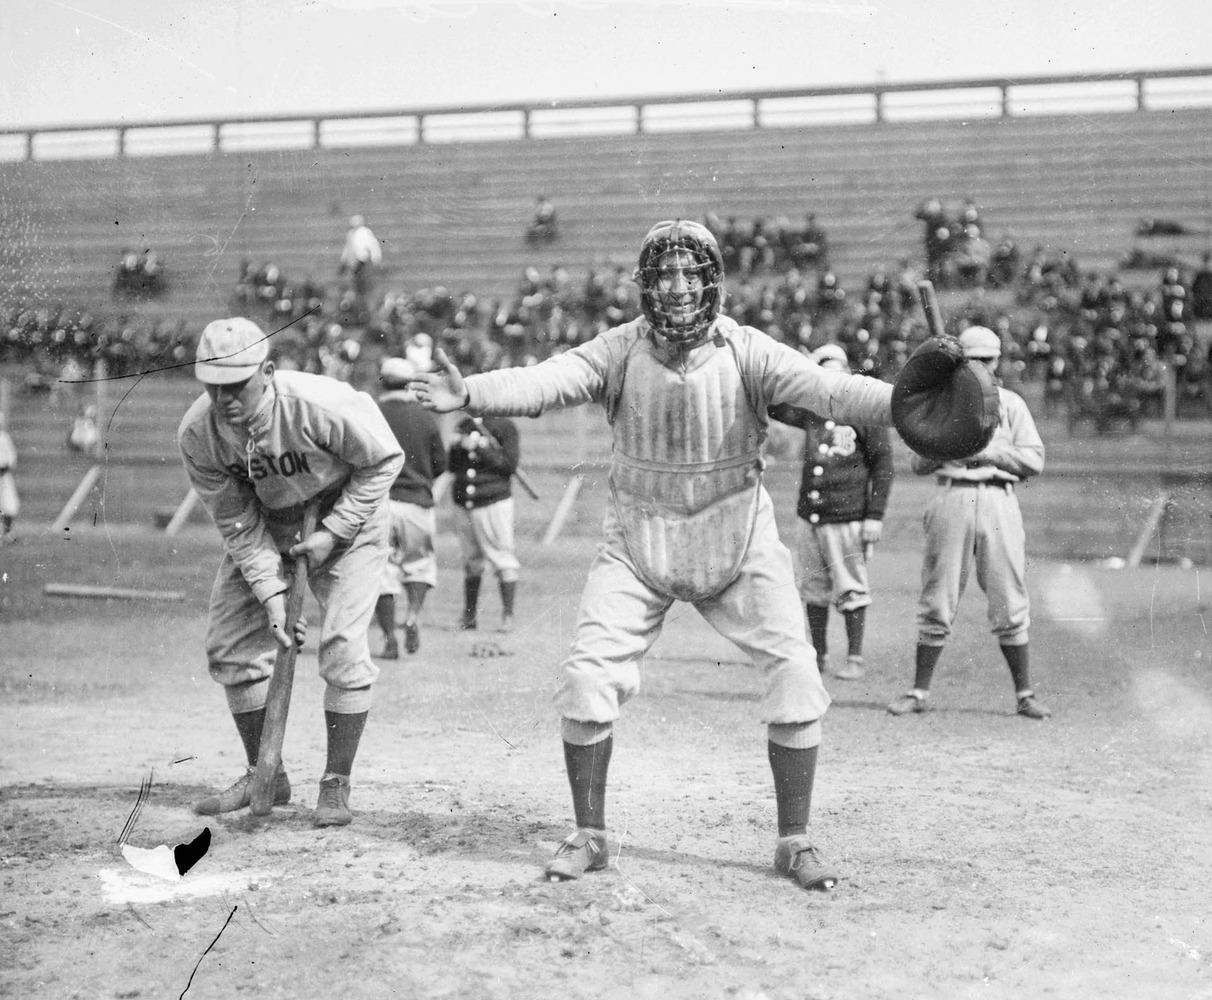 Sport Wallpaper Vintage: The Screwball: Fun With Old Photos